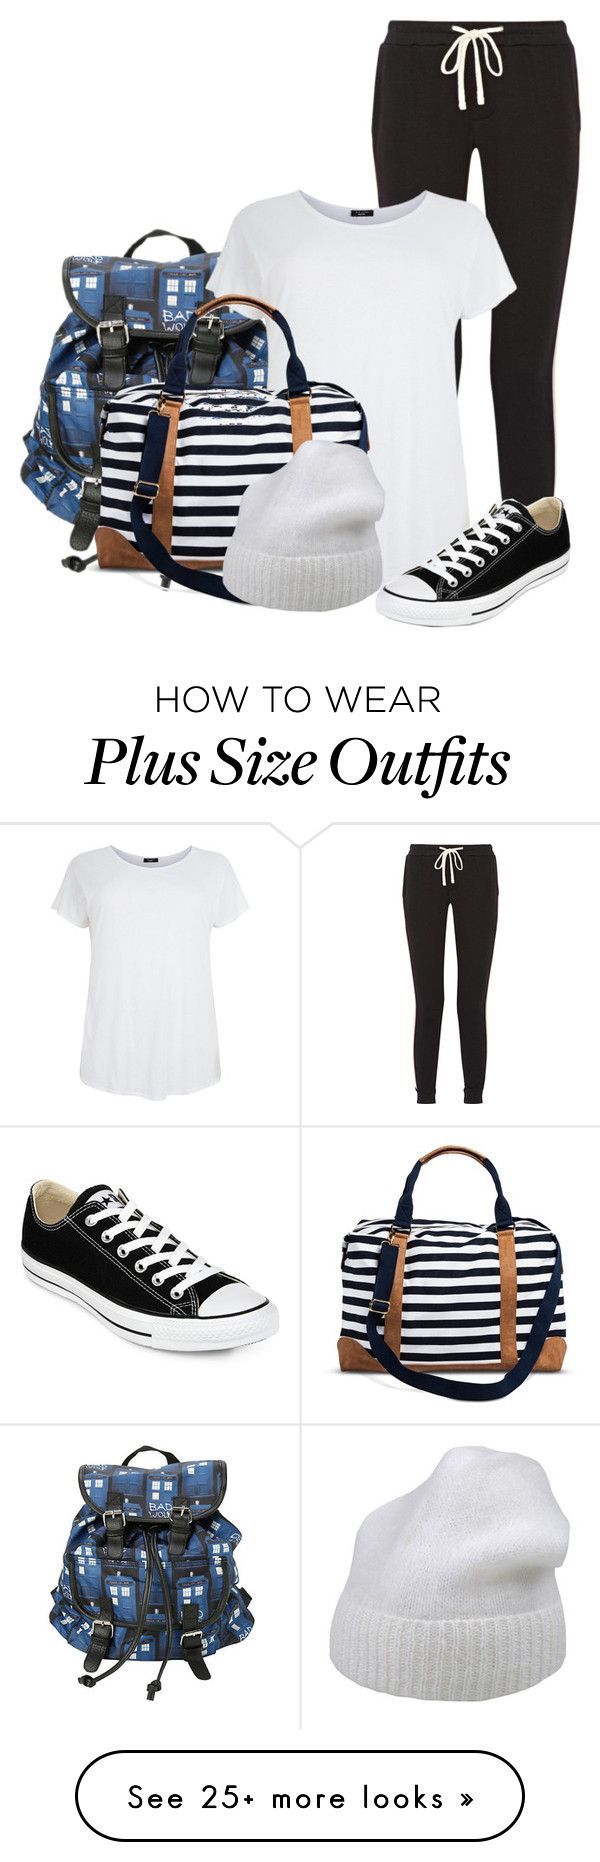 """""""Road trip //Mara"""" by misscreepyashell on Polyvore featuring James Perse, Merona, Forte Forte and Converse"""